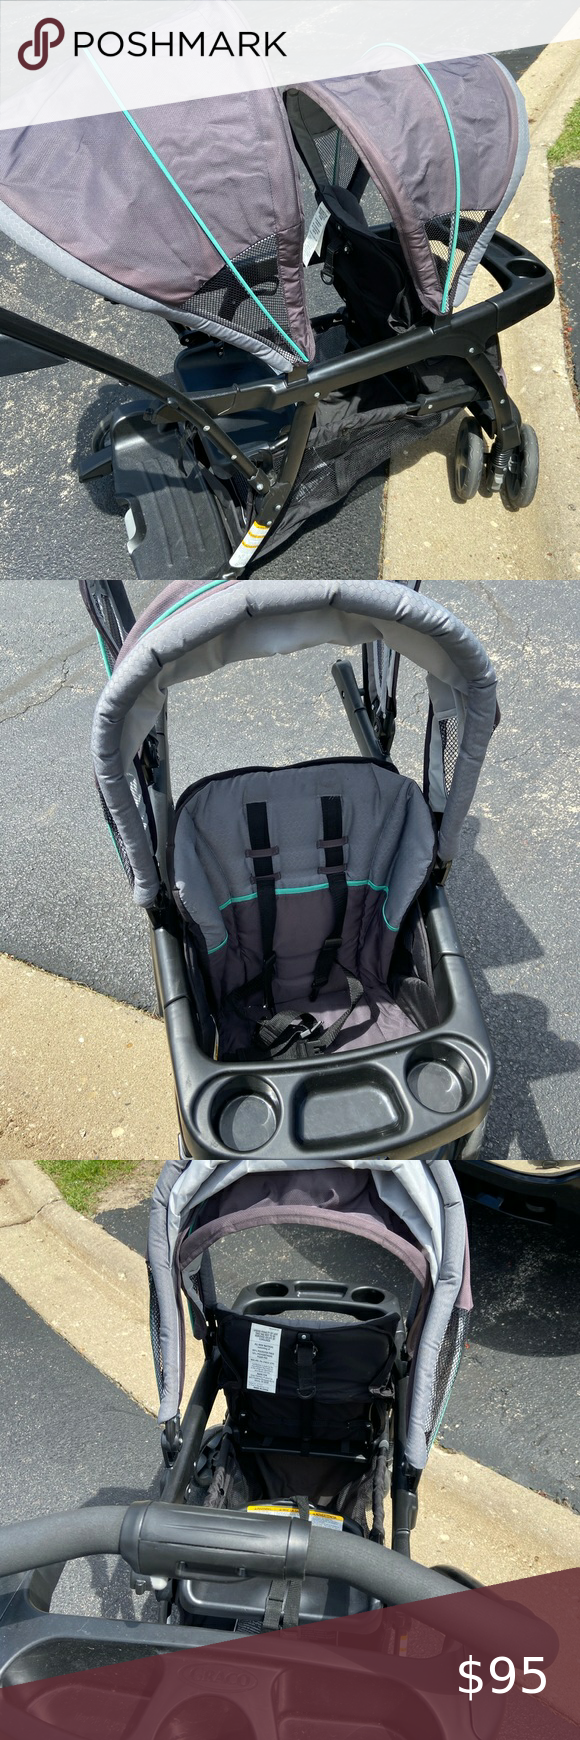 Graco Doble Stroller in 2020 Stroller, Graco, Things to sell